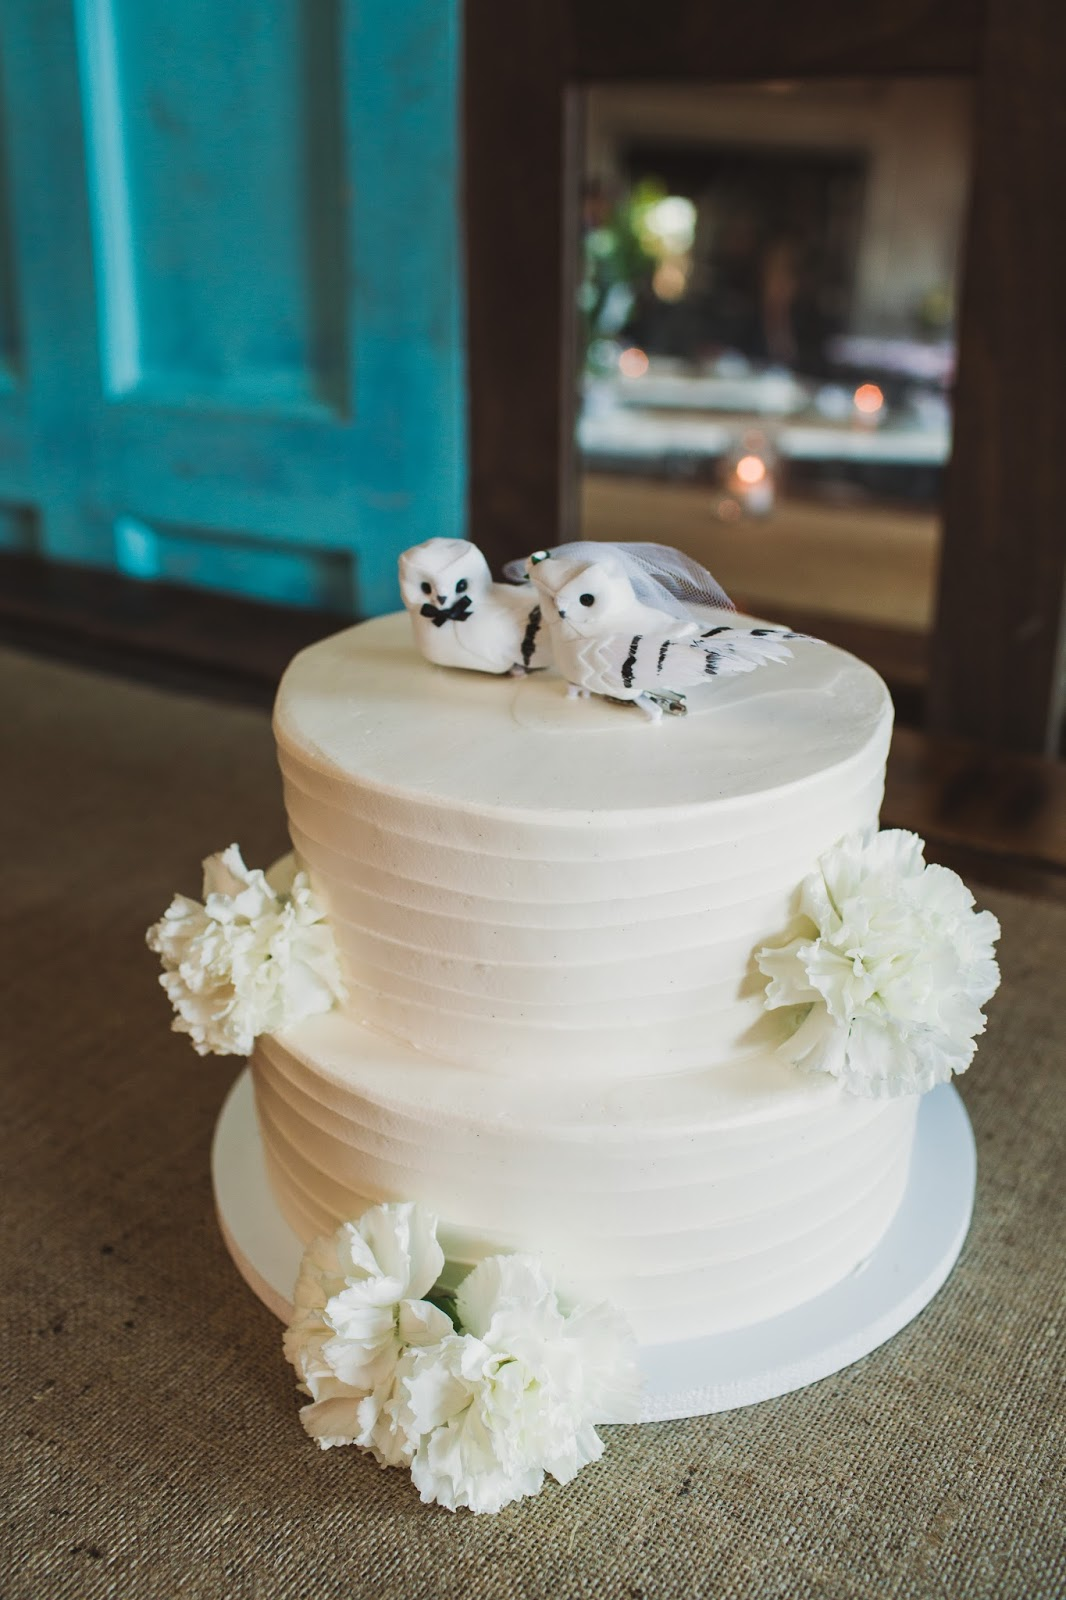 Confections of a Rockstar wedding cake | Porta Asbury Park Wedding Photography blog.cassiecastellaw.com